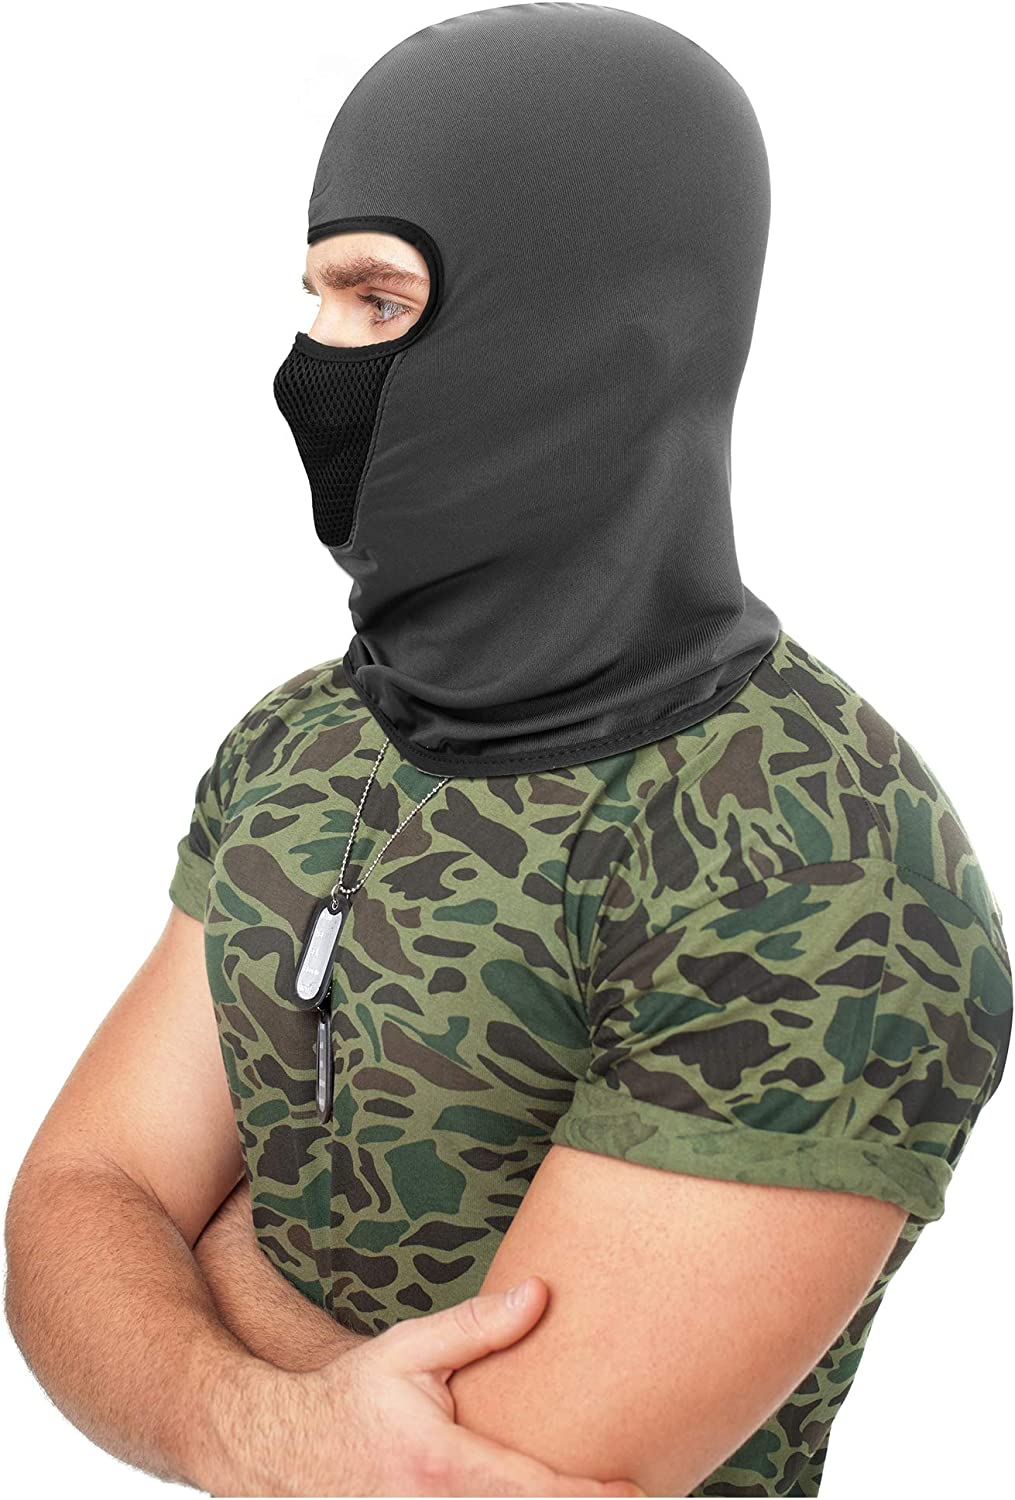 3 Pieces Balaclava Face Mask Motorcycle Mask Windproof Camouflage Fishing Cap Face Cover for Sun Dust Protection